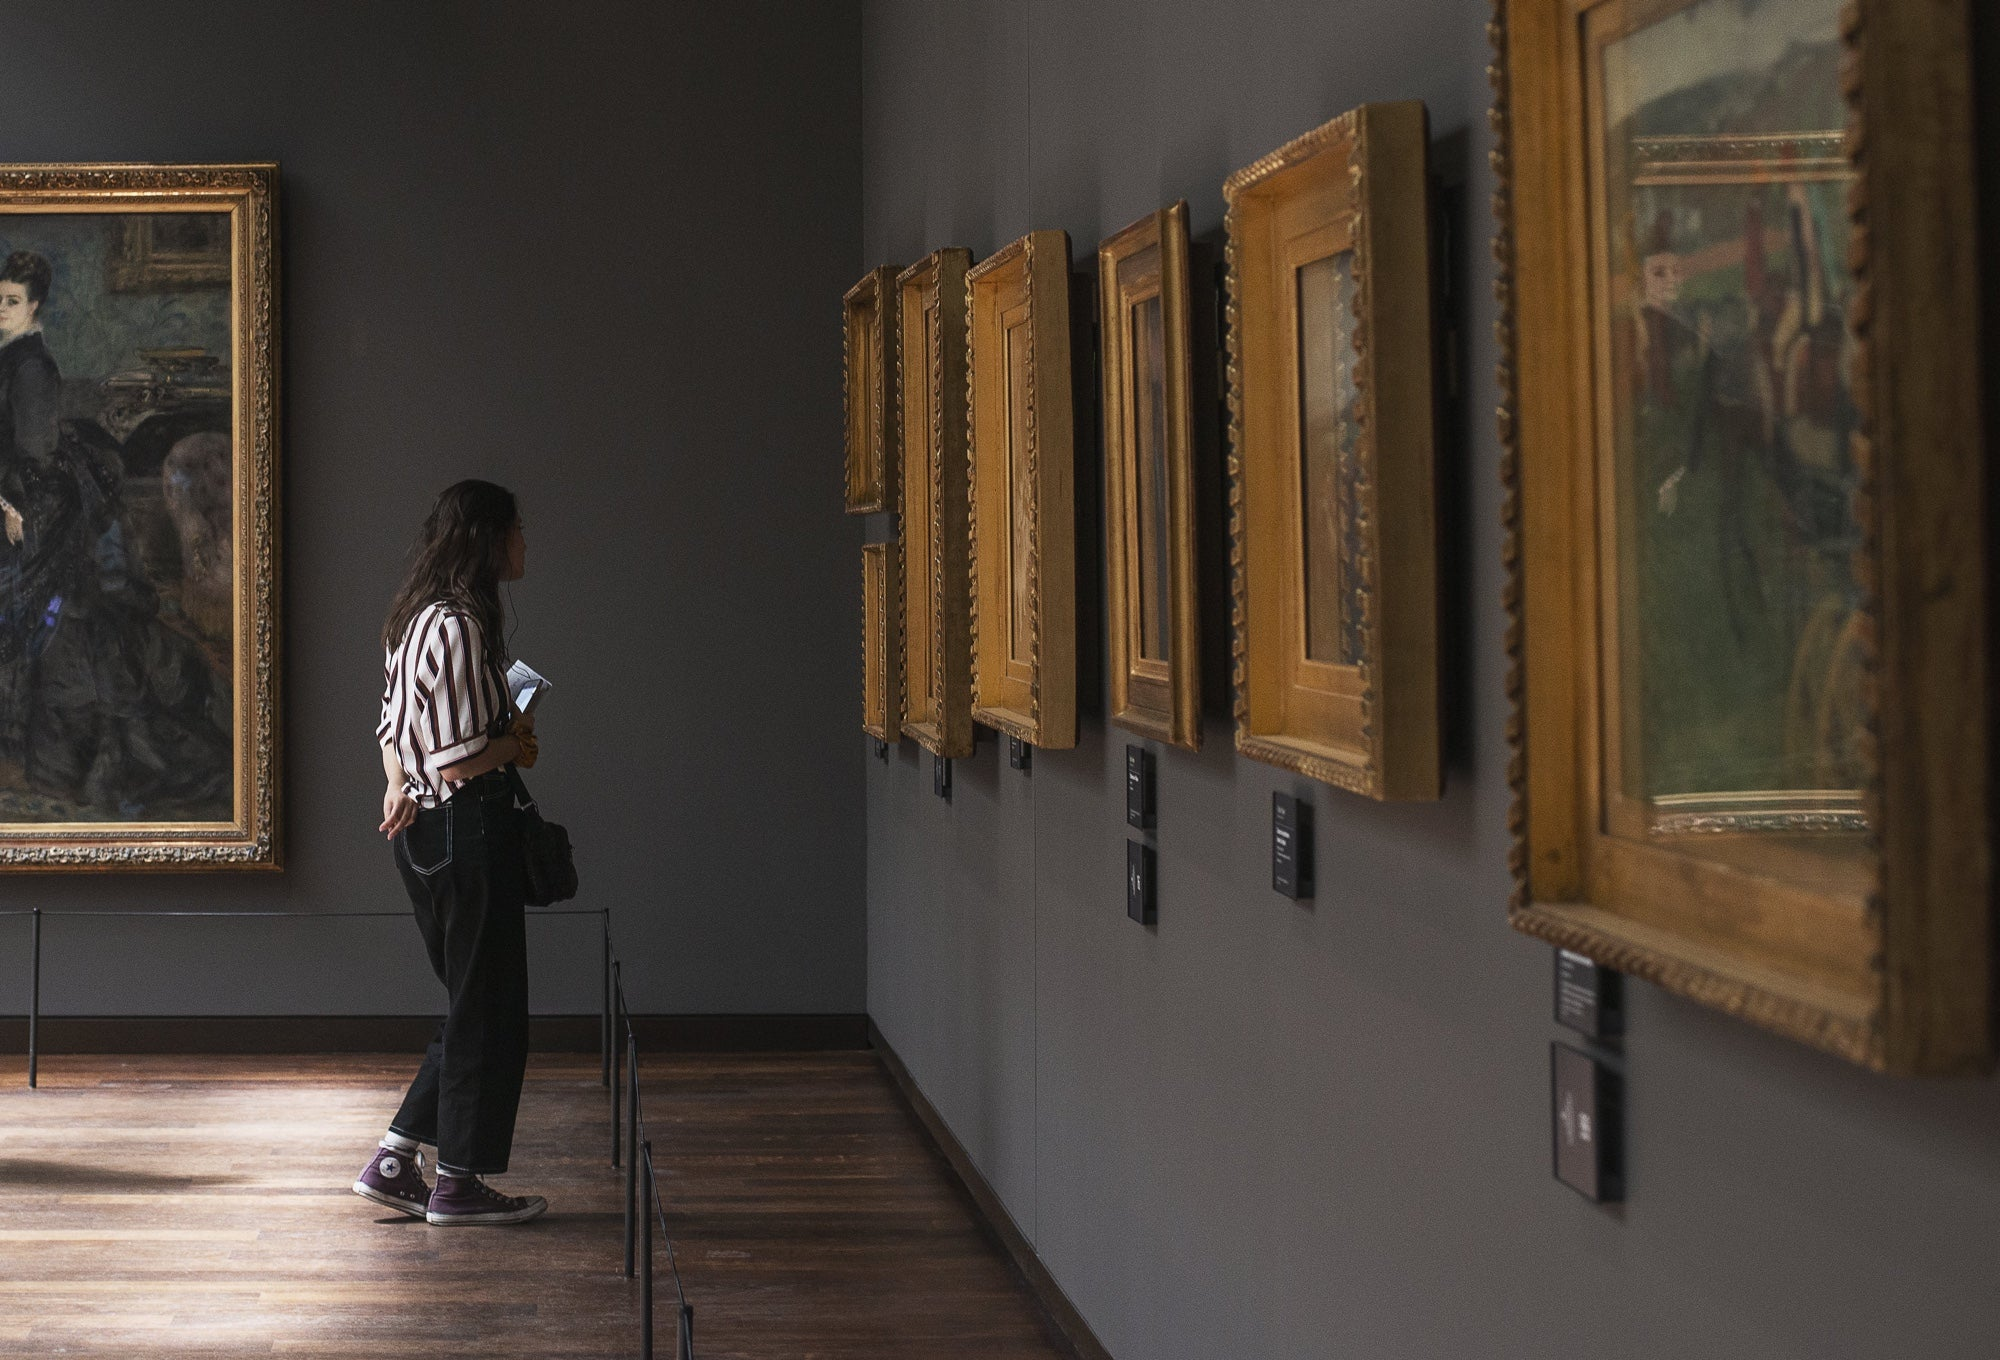 A woman looks at art in a gallery